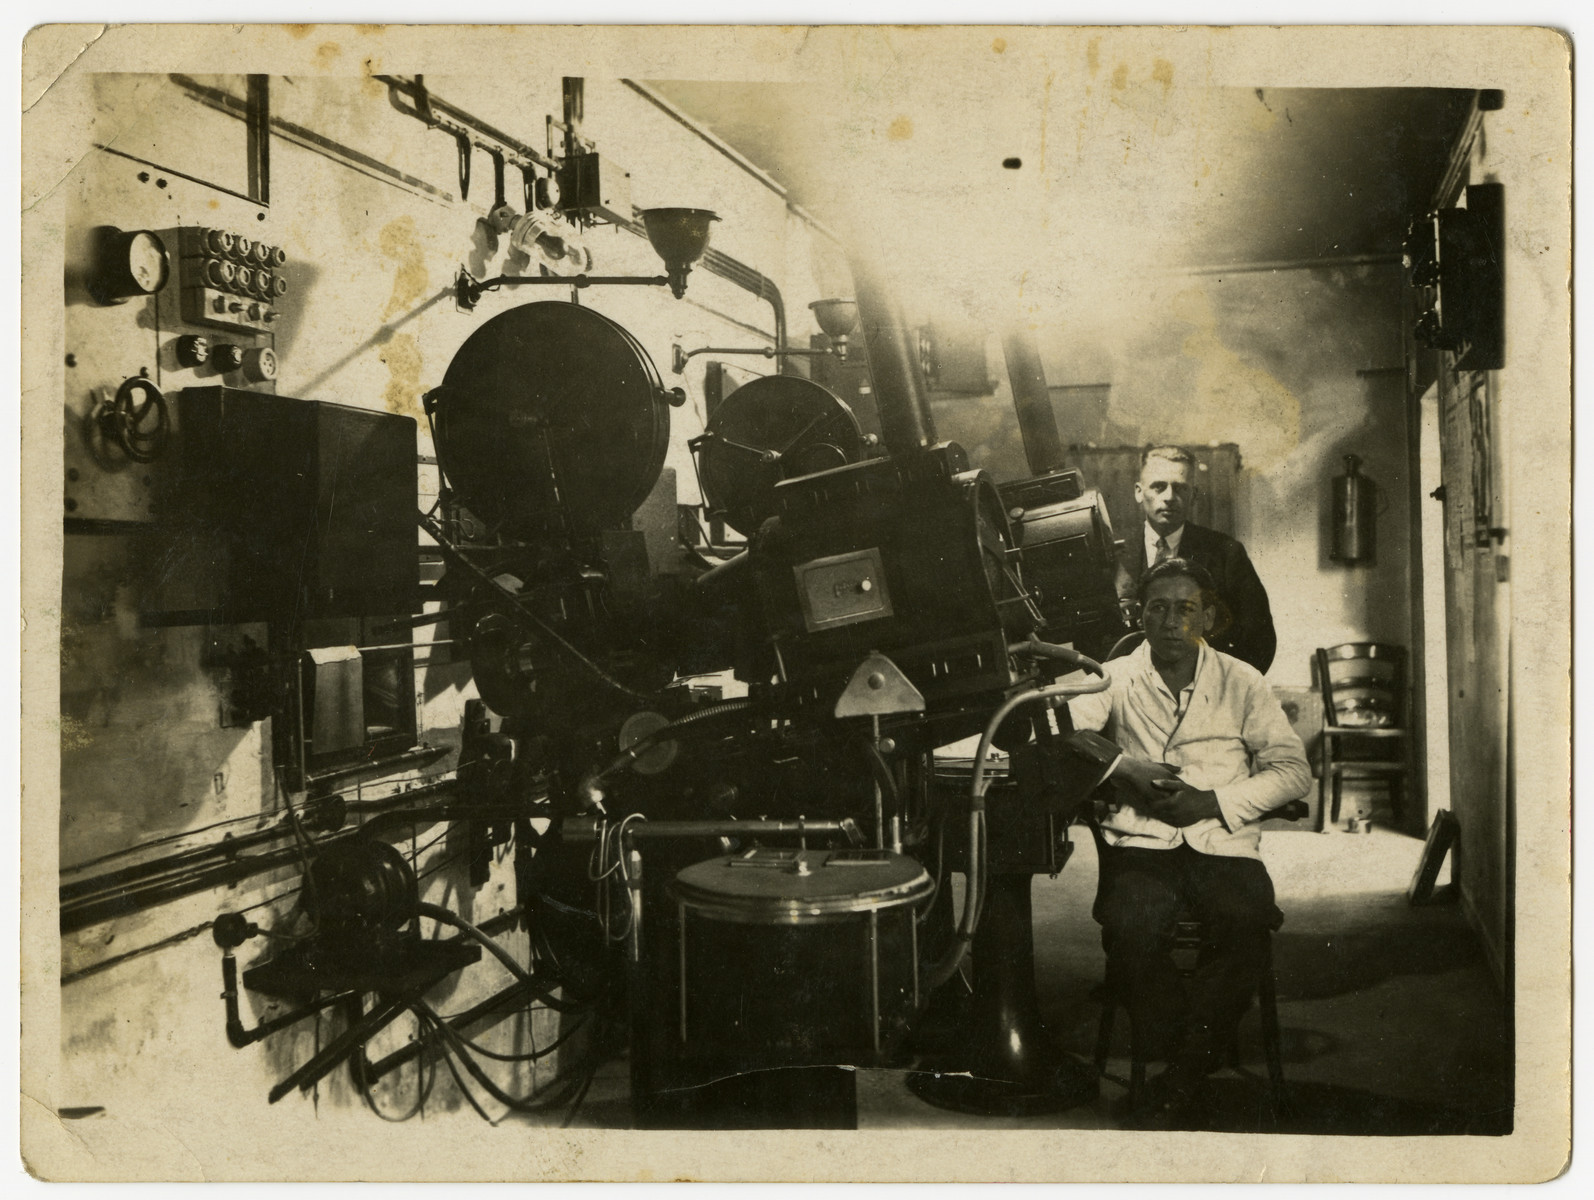 Projection studio of the Rheingold Theater, attatched to the Cohn's home.    The Nazis later confiscated the theater, and the young  German man pictured in the photograph assumed control.